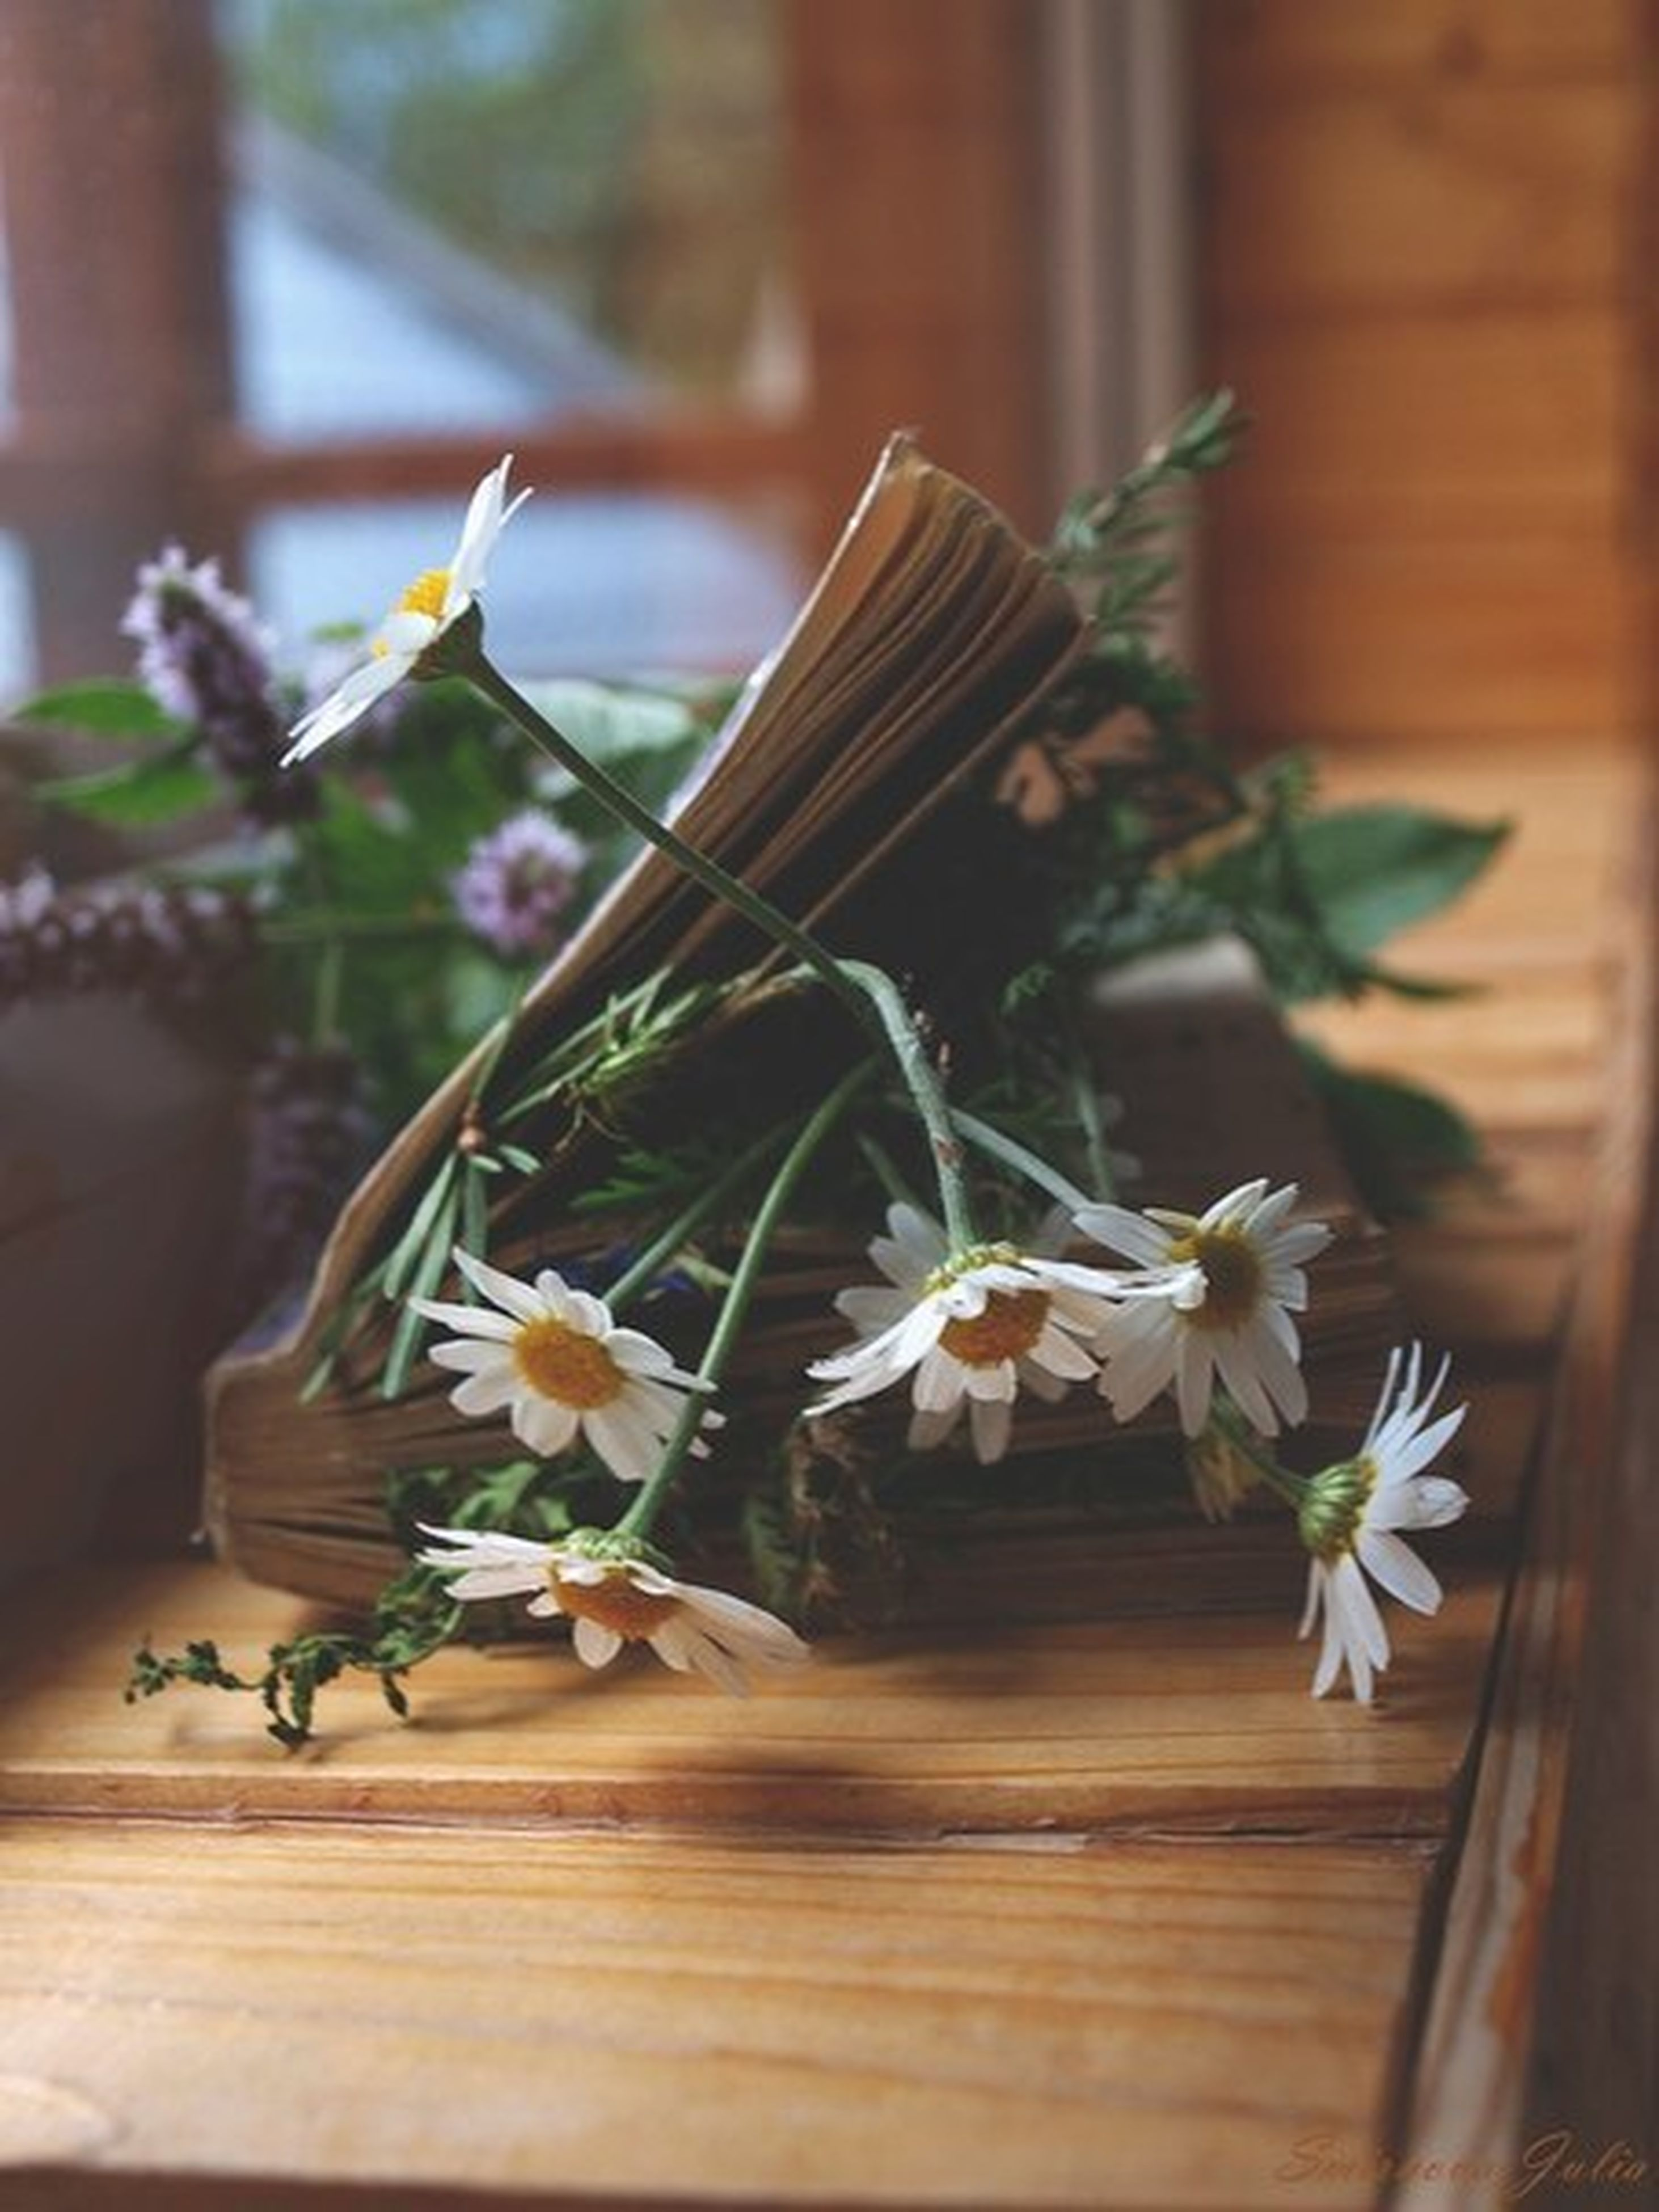 flower, table, indoors, freshness, wood - material, wooden, fragility, petal, vase, focus on foreground, close-up, white color, flower head, selective focus, plant, nature, growth, beauty in nature, still life, stem